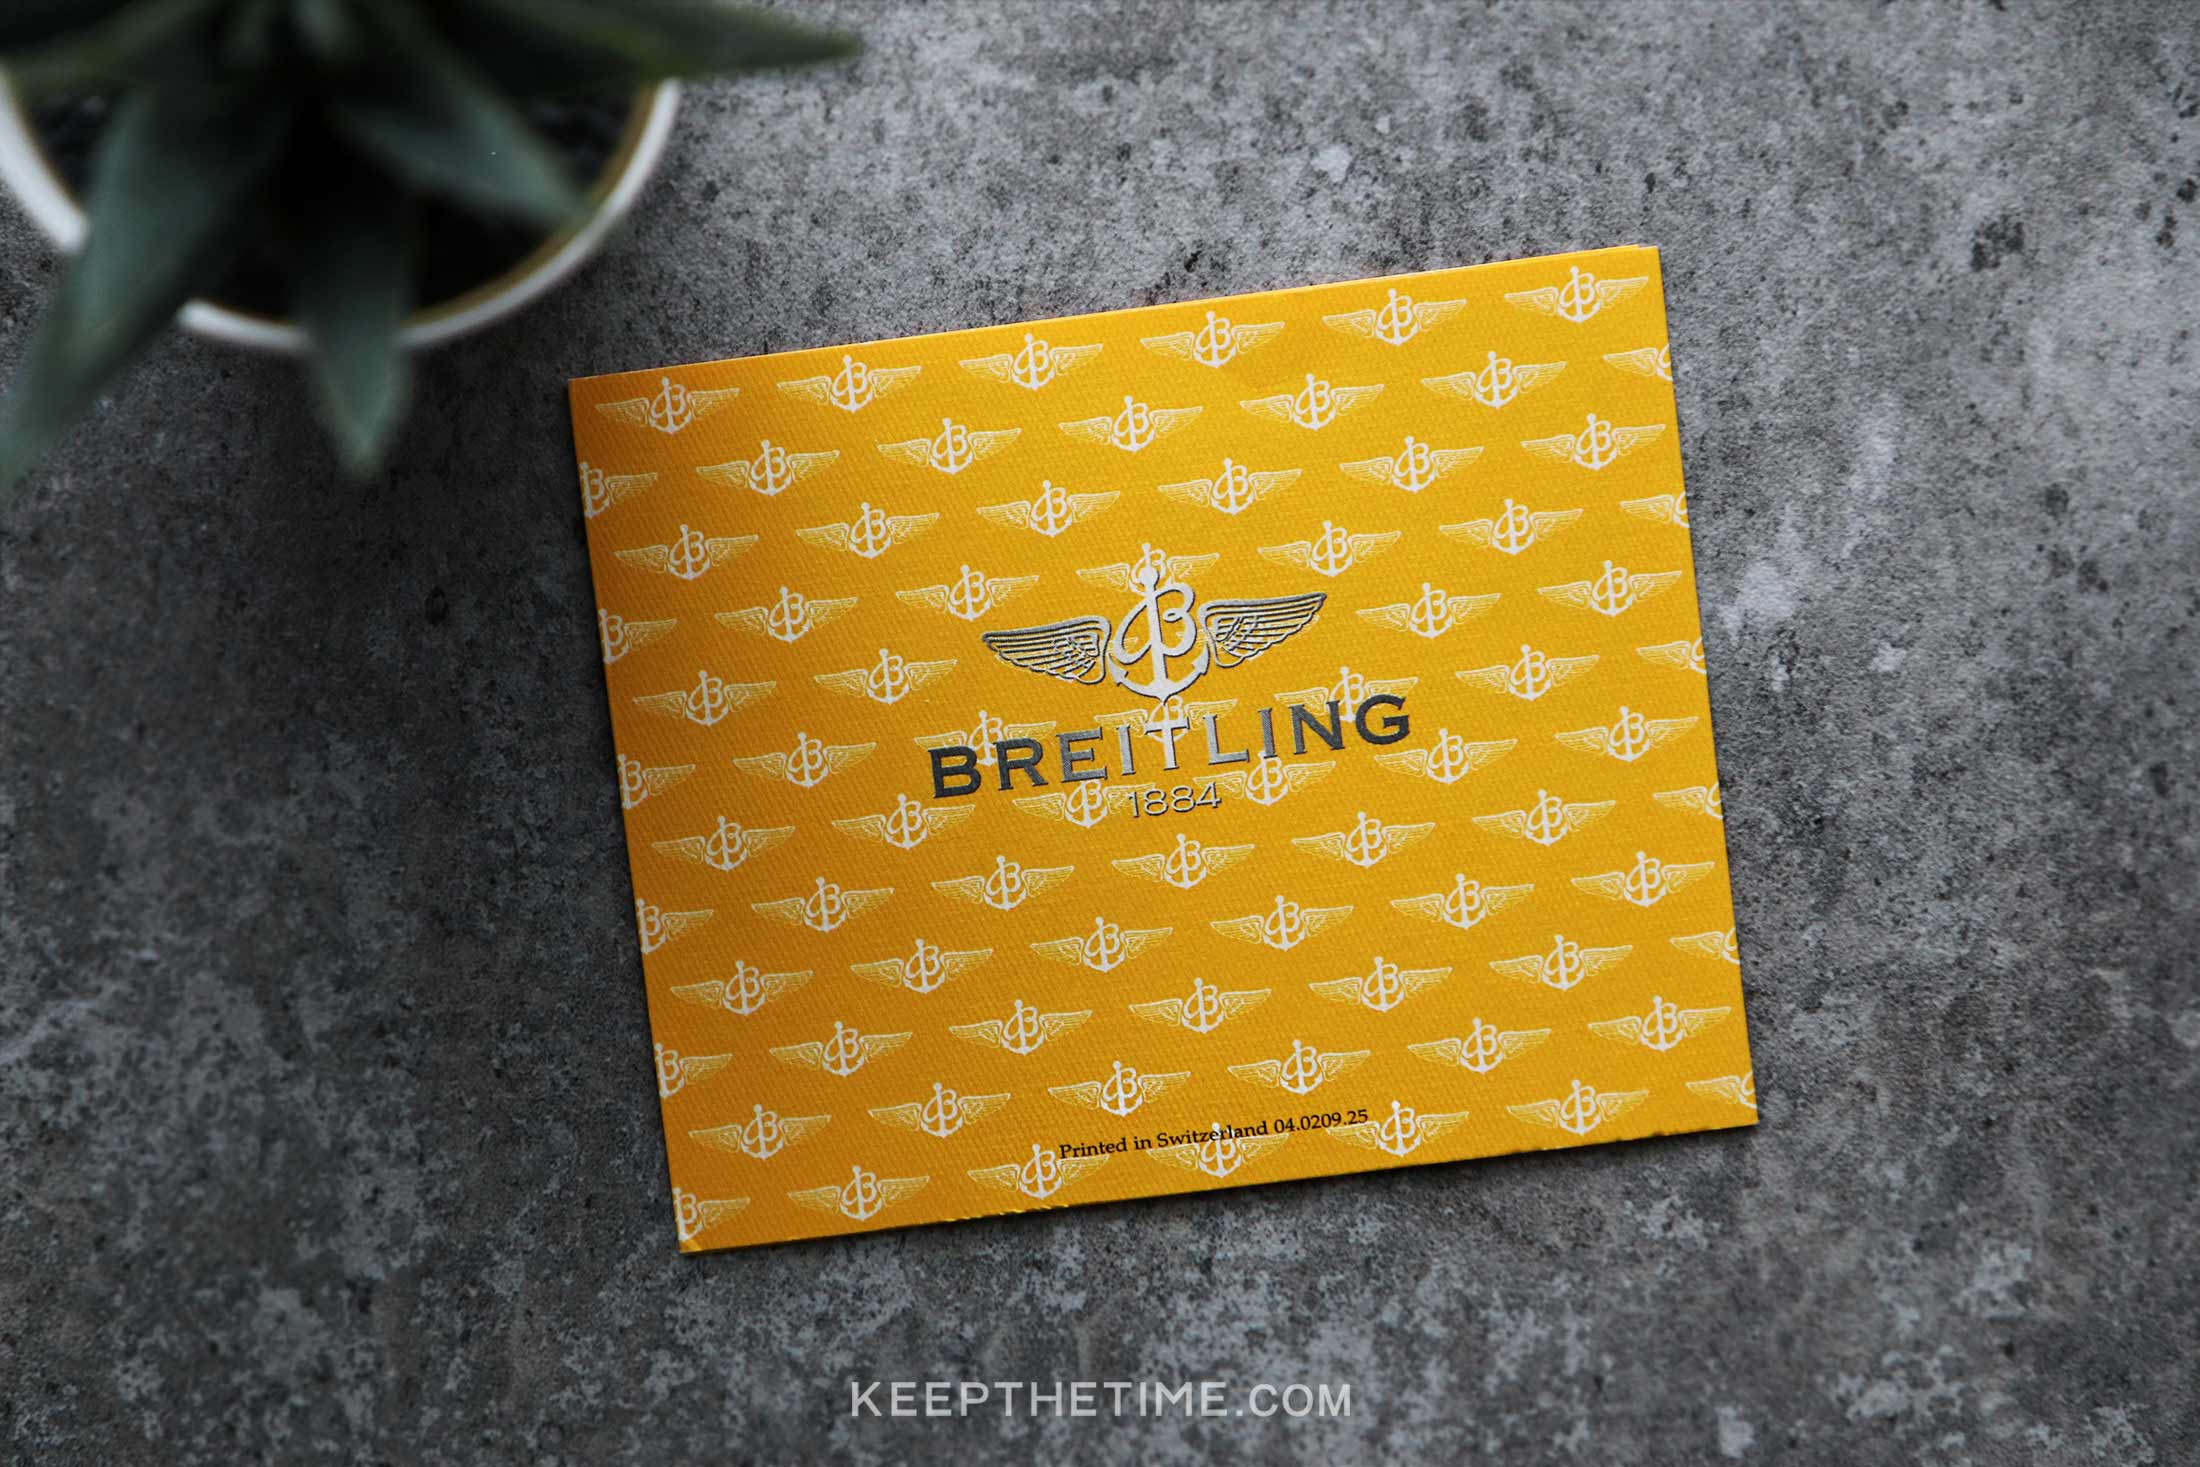 Breitling Authorized Distributors Card 10